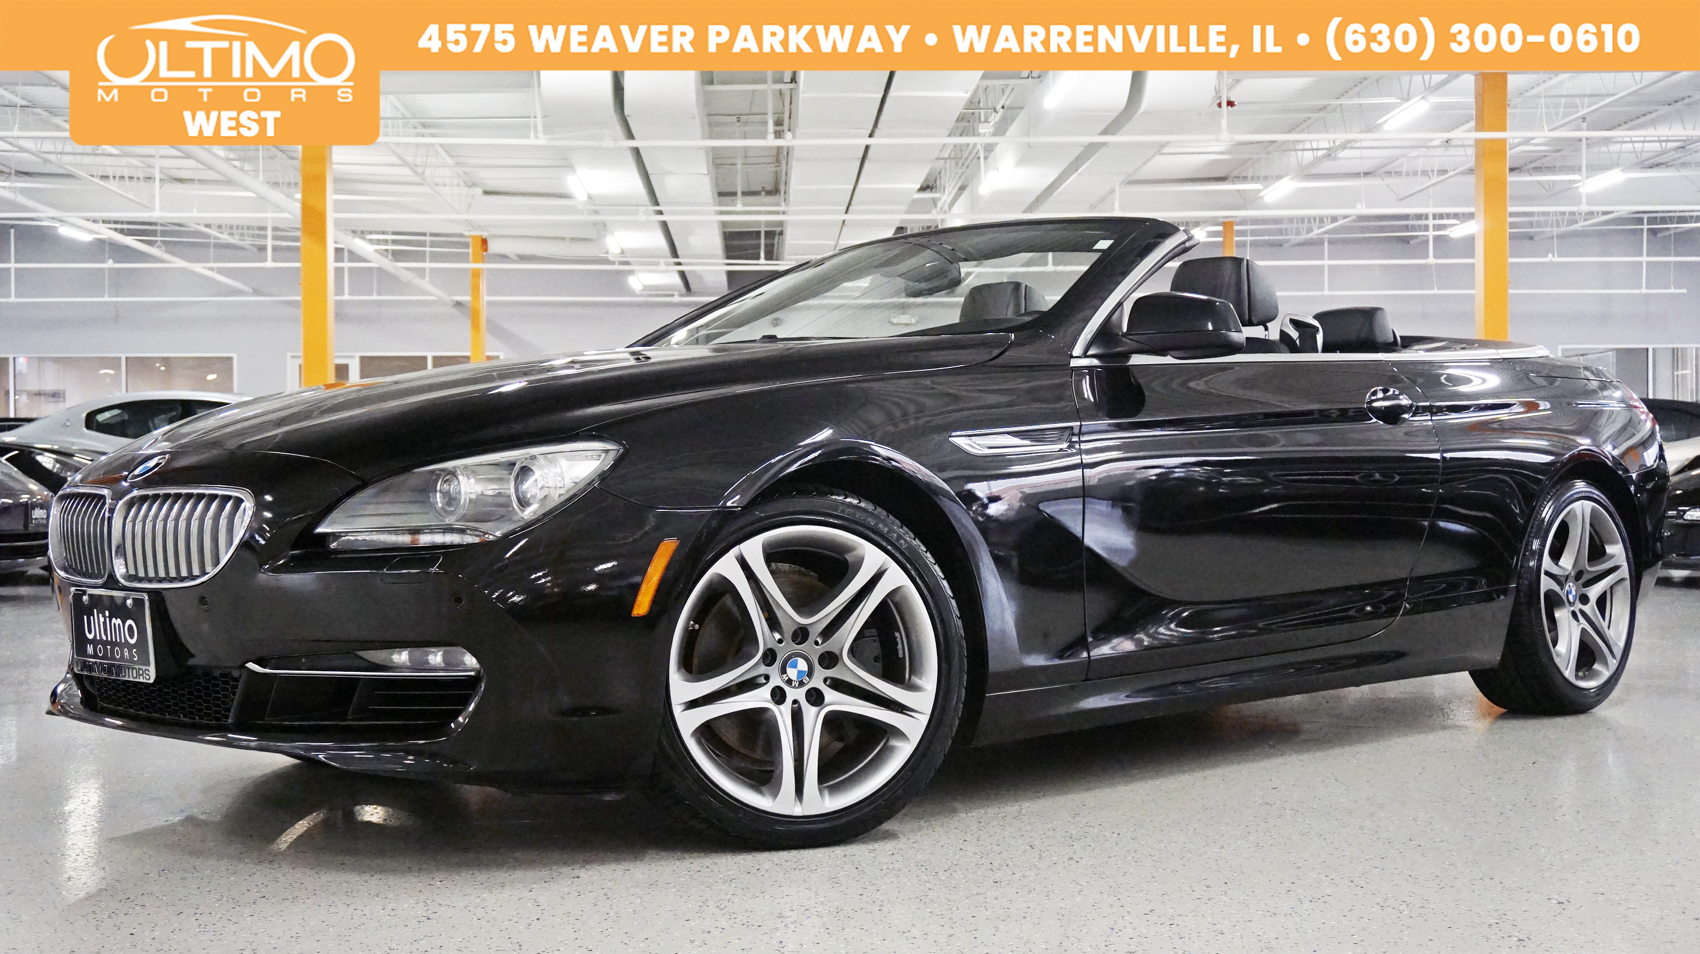 Pre-Owned 2012 BMW 6 Series 650i xDrive Navi, Rear Camera, Luxury Seating MSRP $98,175